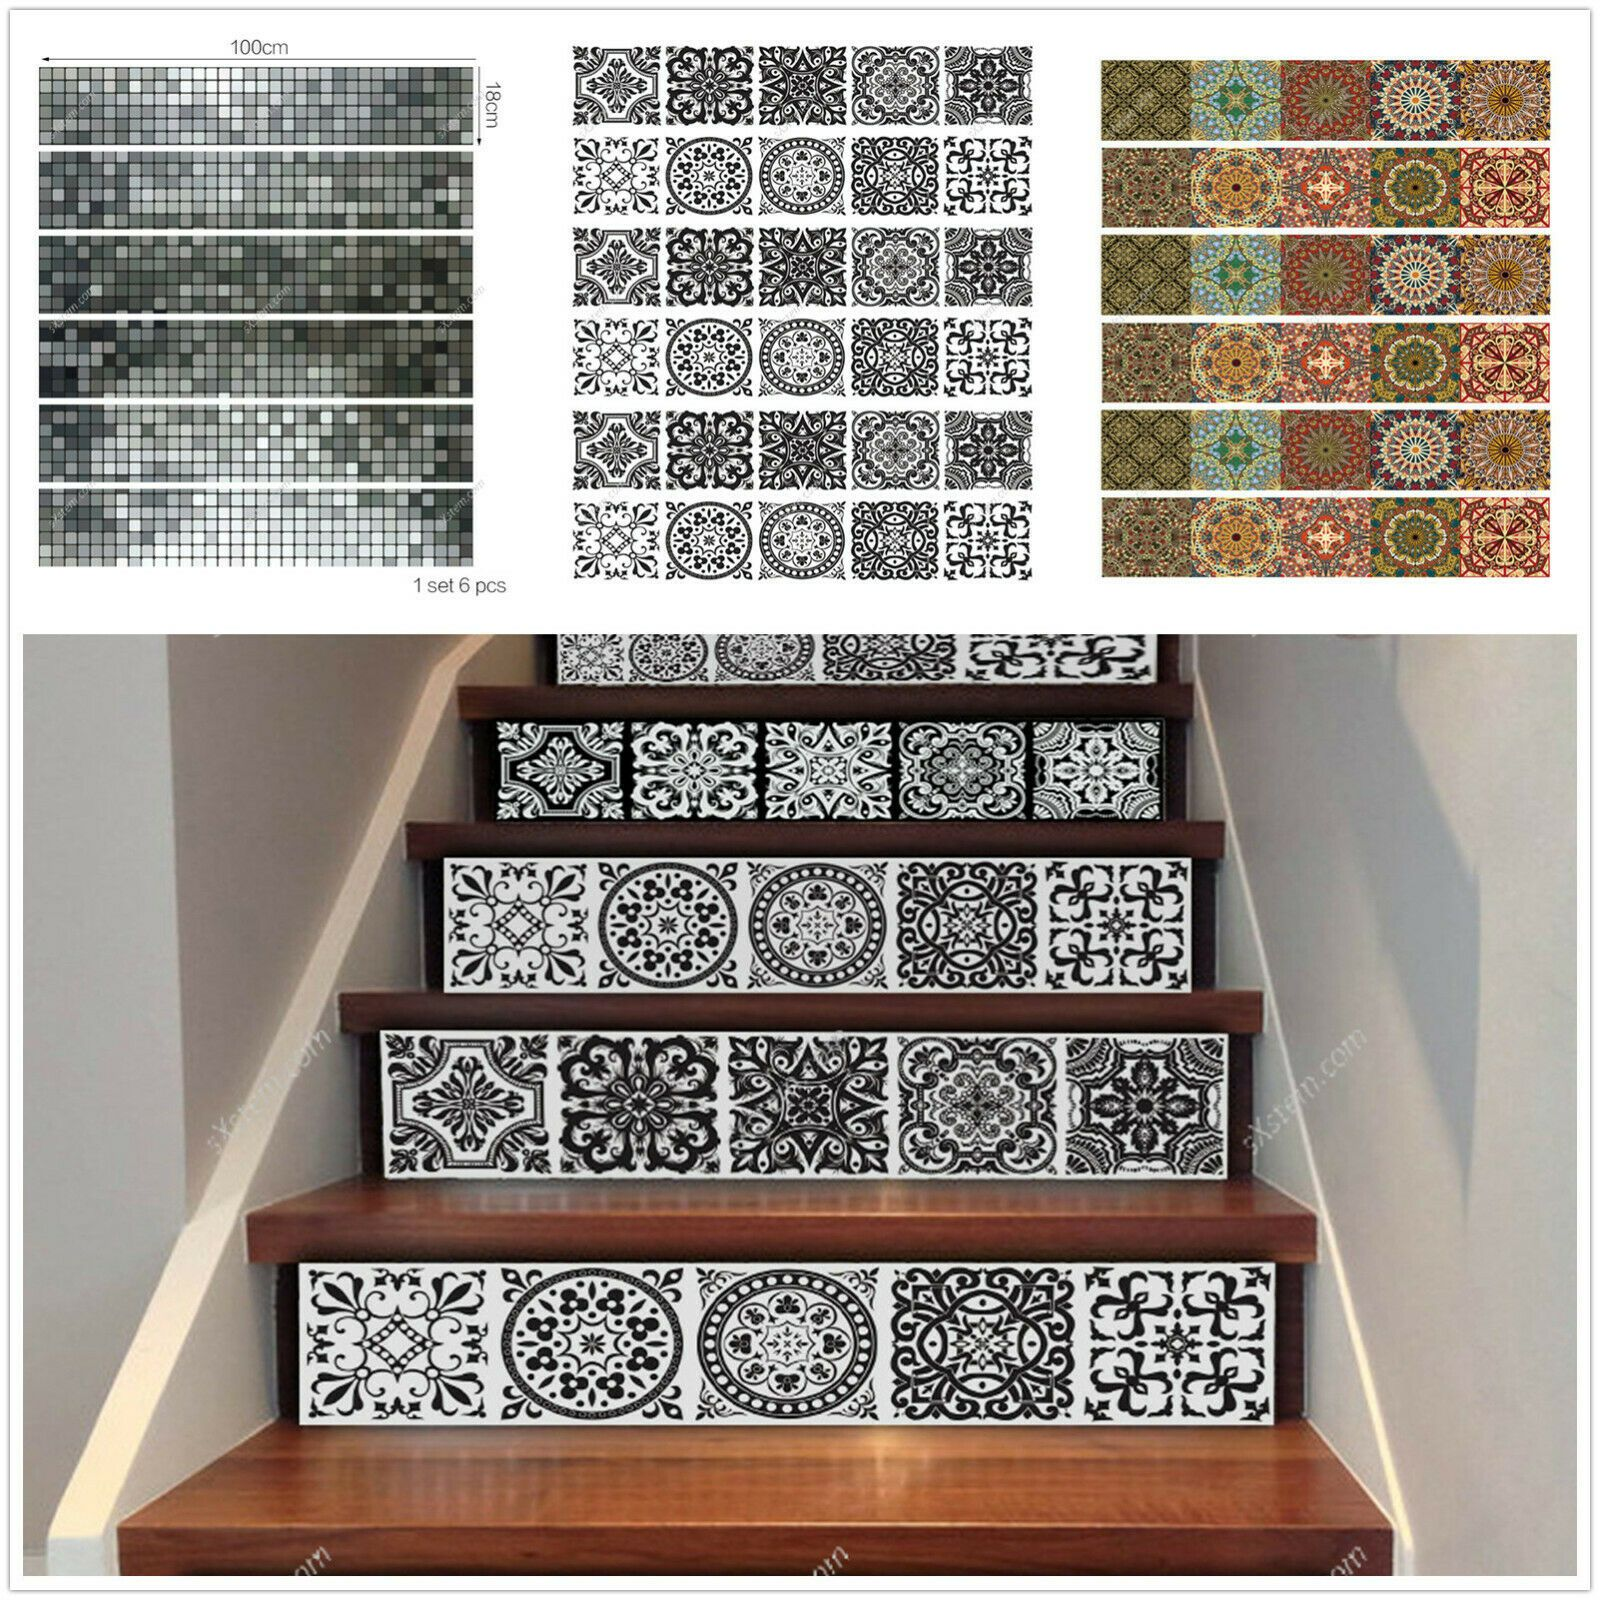 6pcs 3d Mosaic Stair Riser Decals Wall Tile Stickers Self Adhesive Wallpaper Art Mosaic Stairs Self Adhesive Wallpaper Mosaic